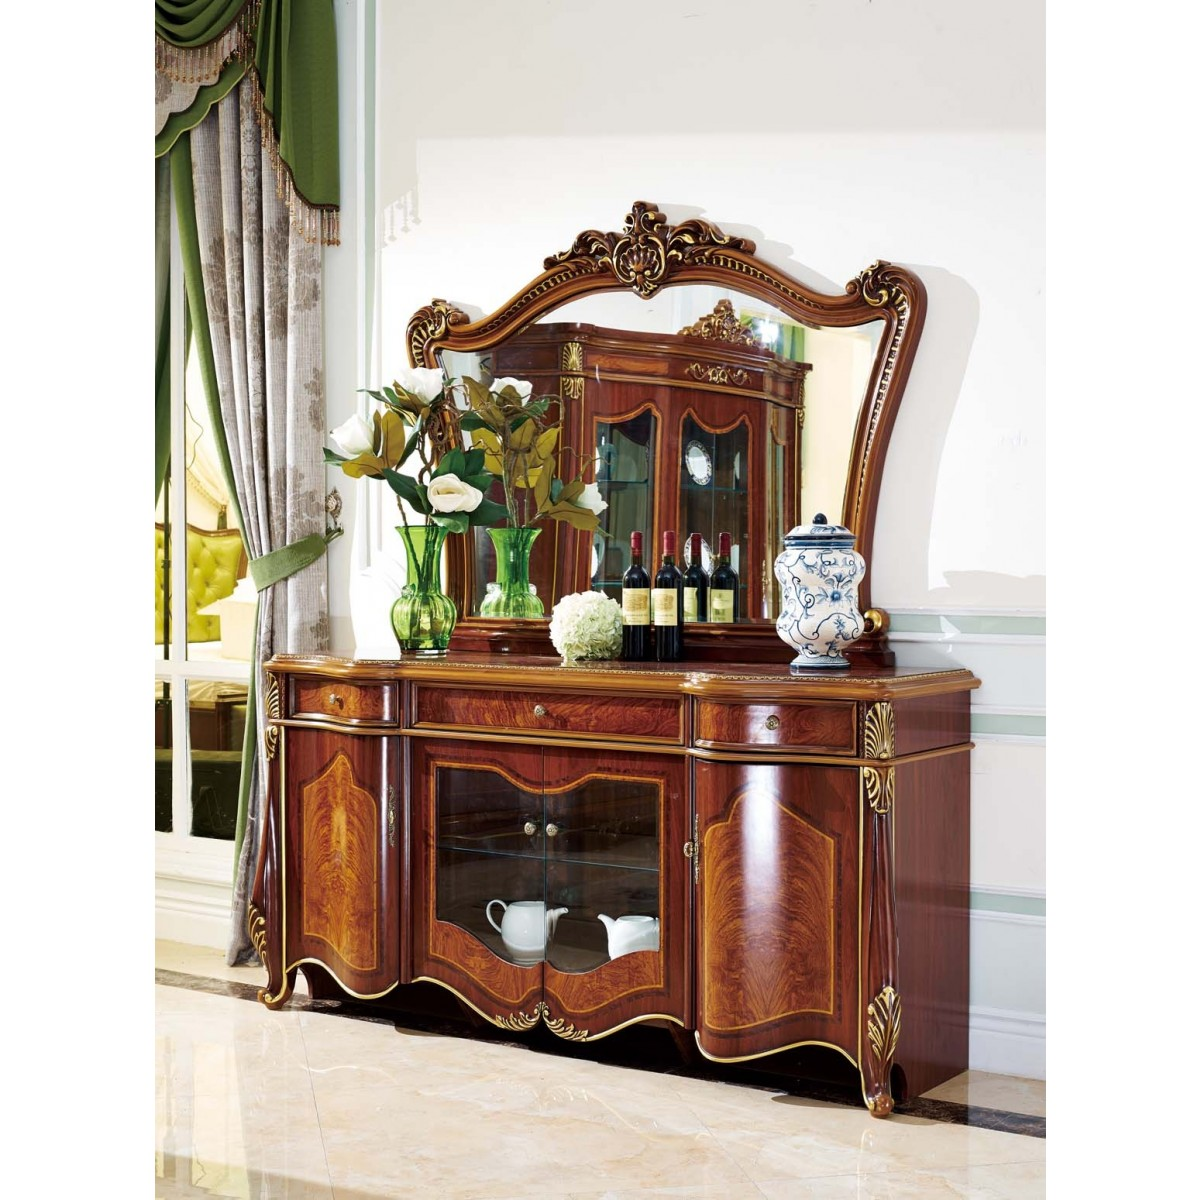 Classic Living room buffet B-9033 - Storage cabinets, welsch ...